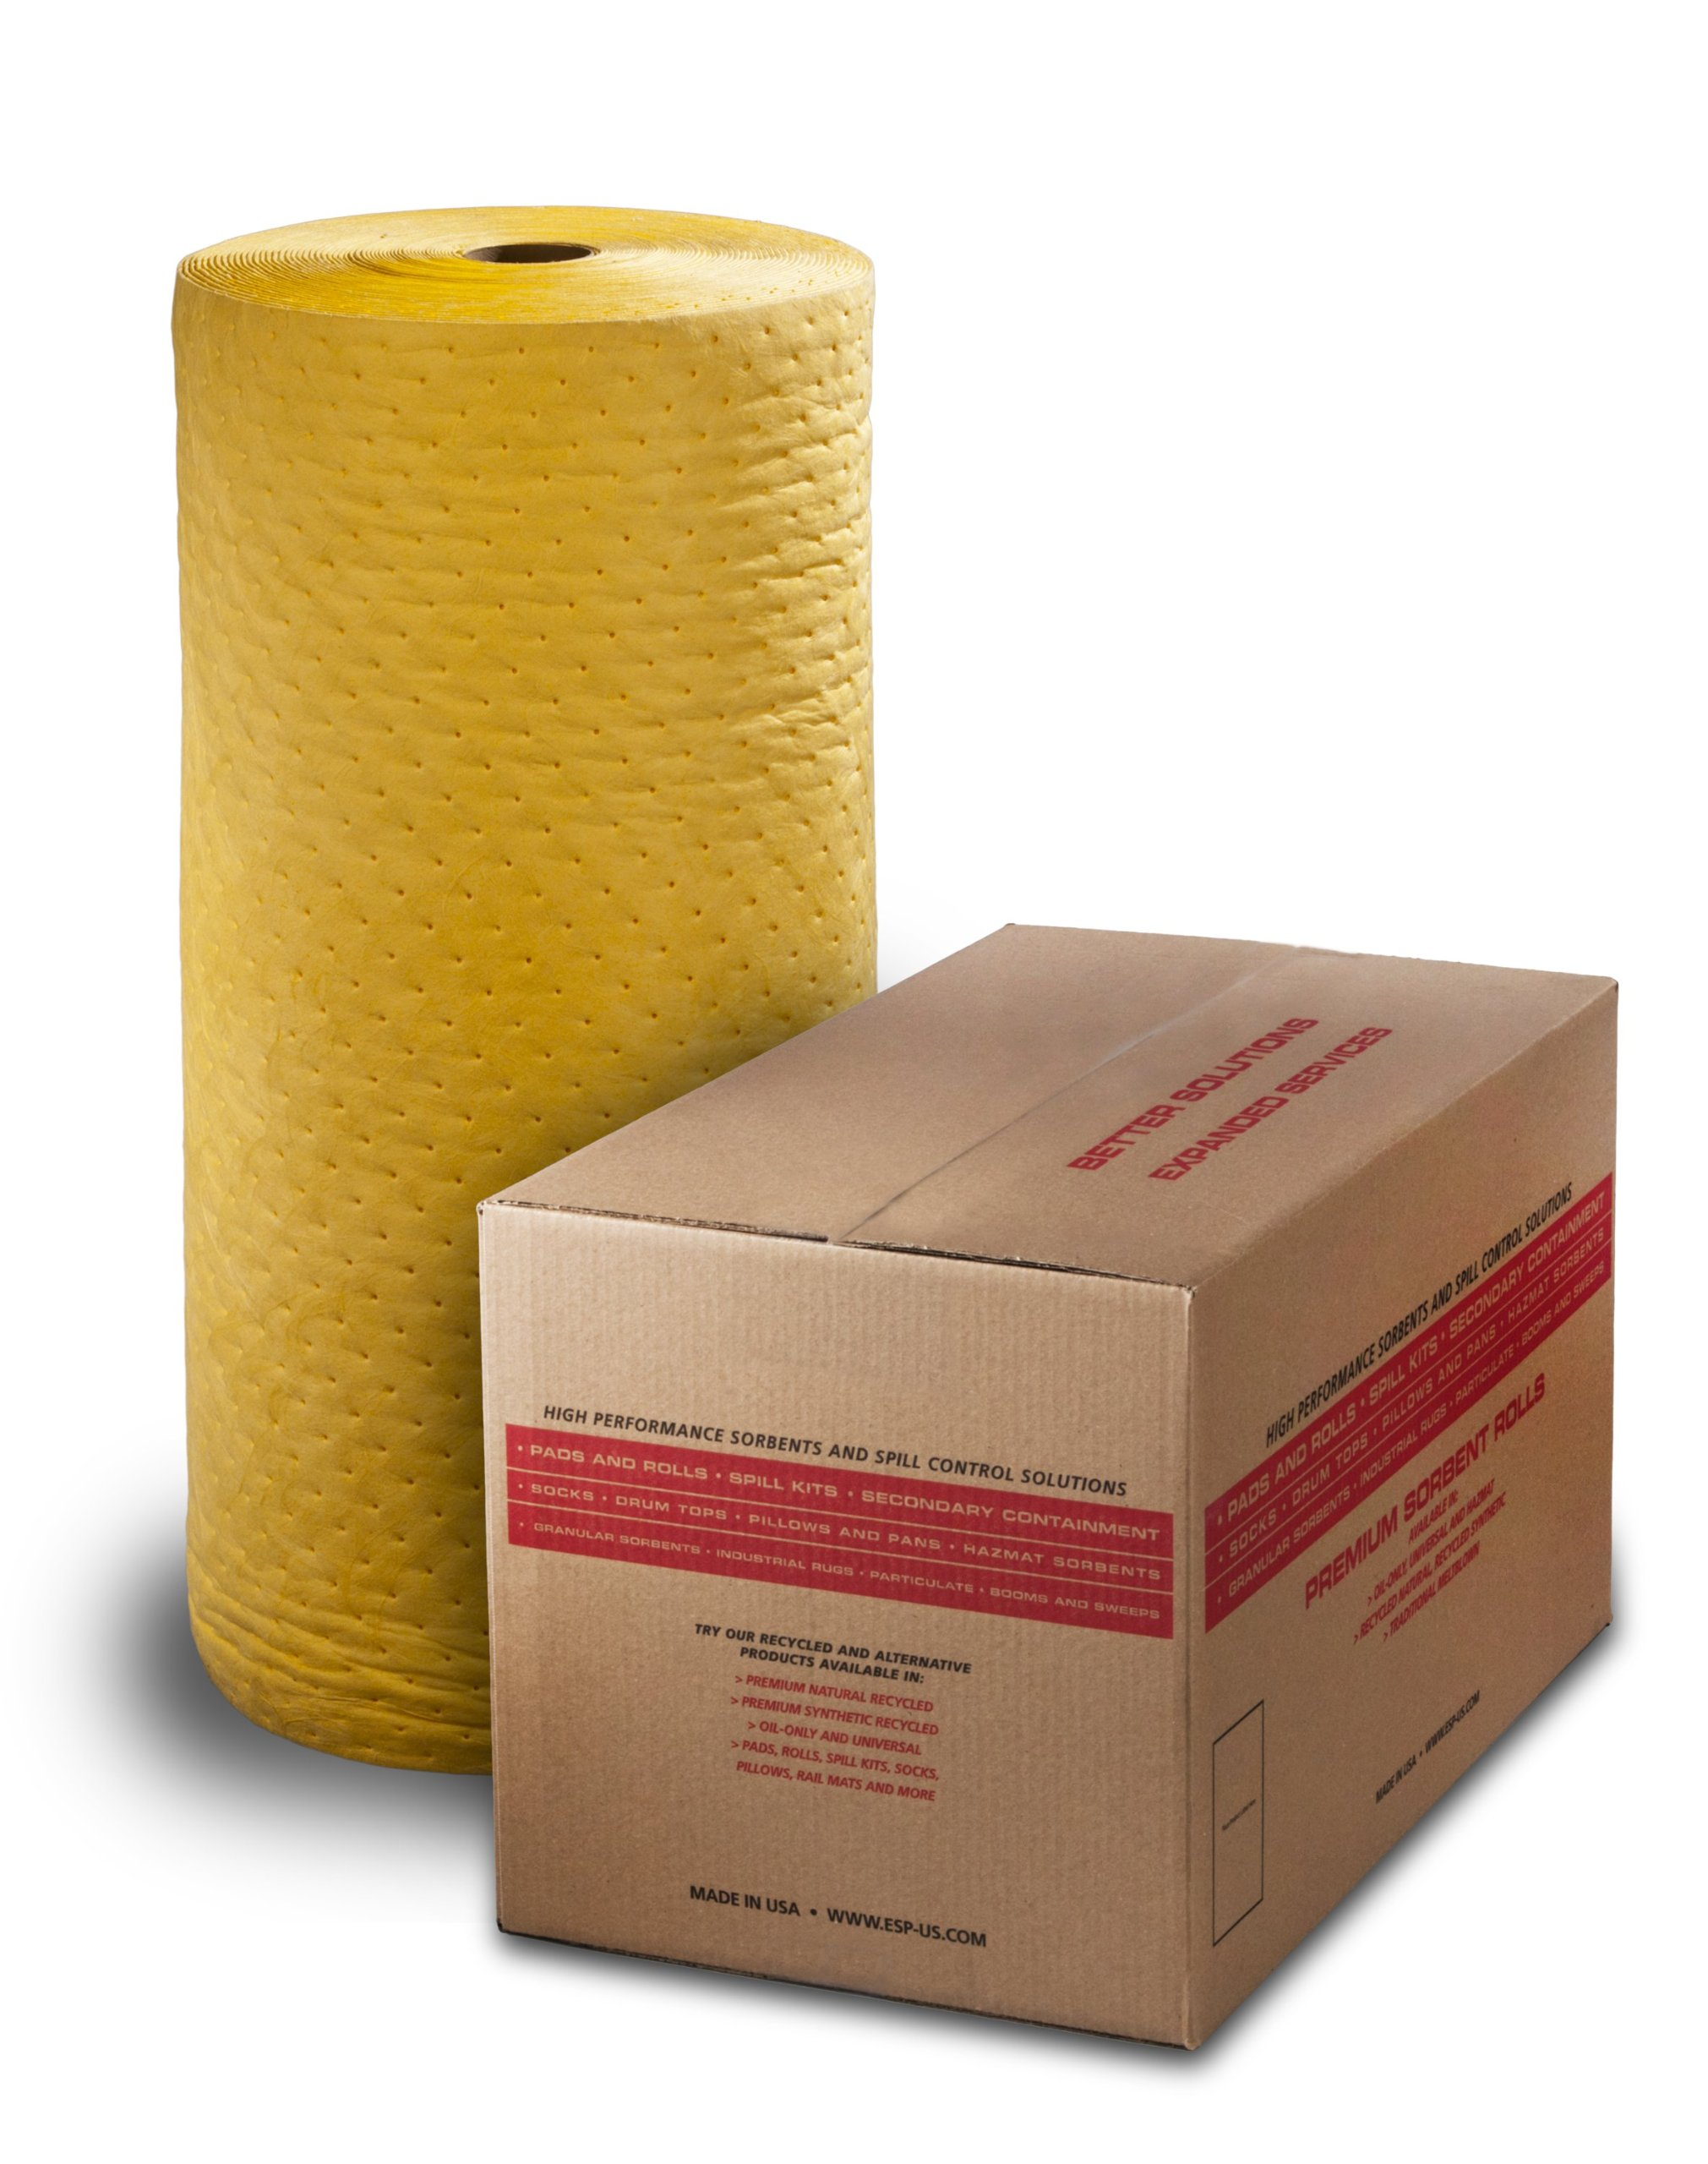 ESP 1AMYRL Airmatrix Polypropylene Heavy Weight Chemical Hazmat Absorbent Laminated Roll, 150' Length x 28'' Width, Yellow by ESP (Image #1)